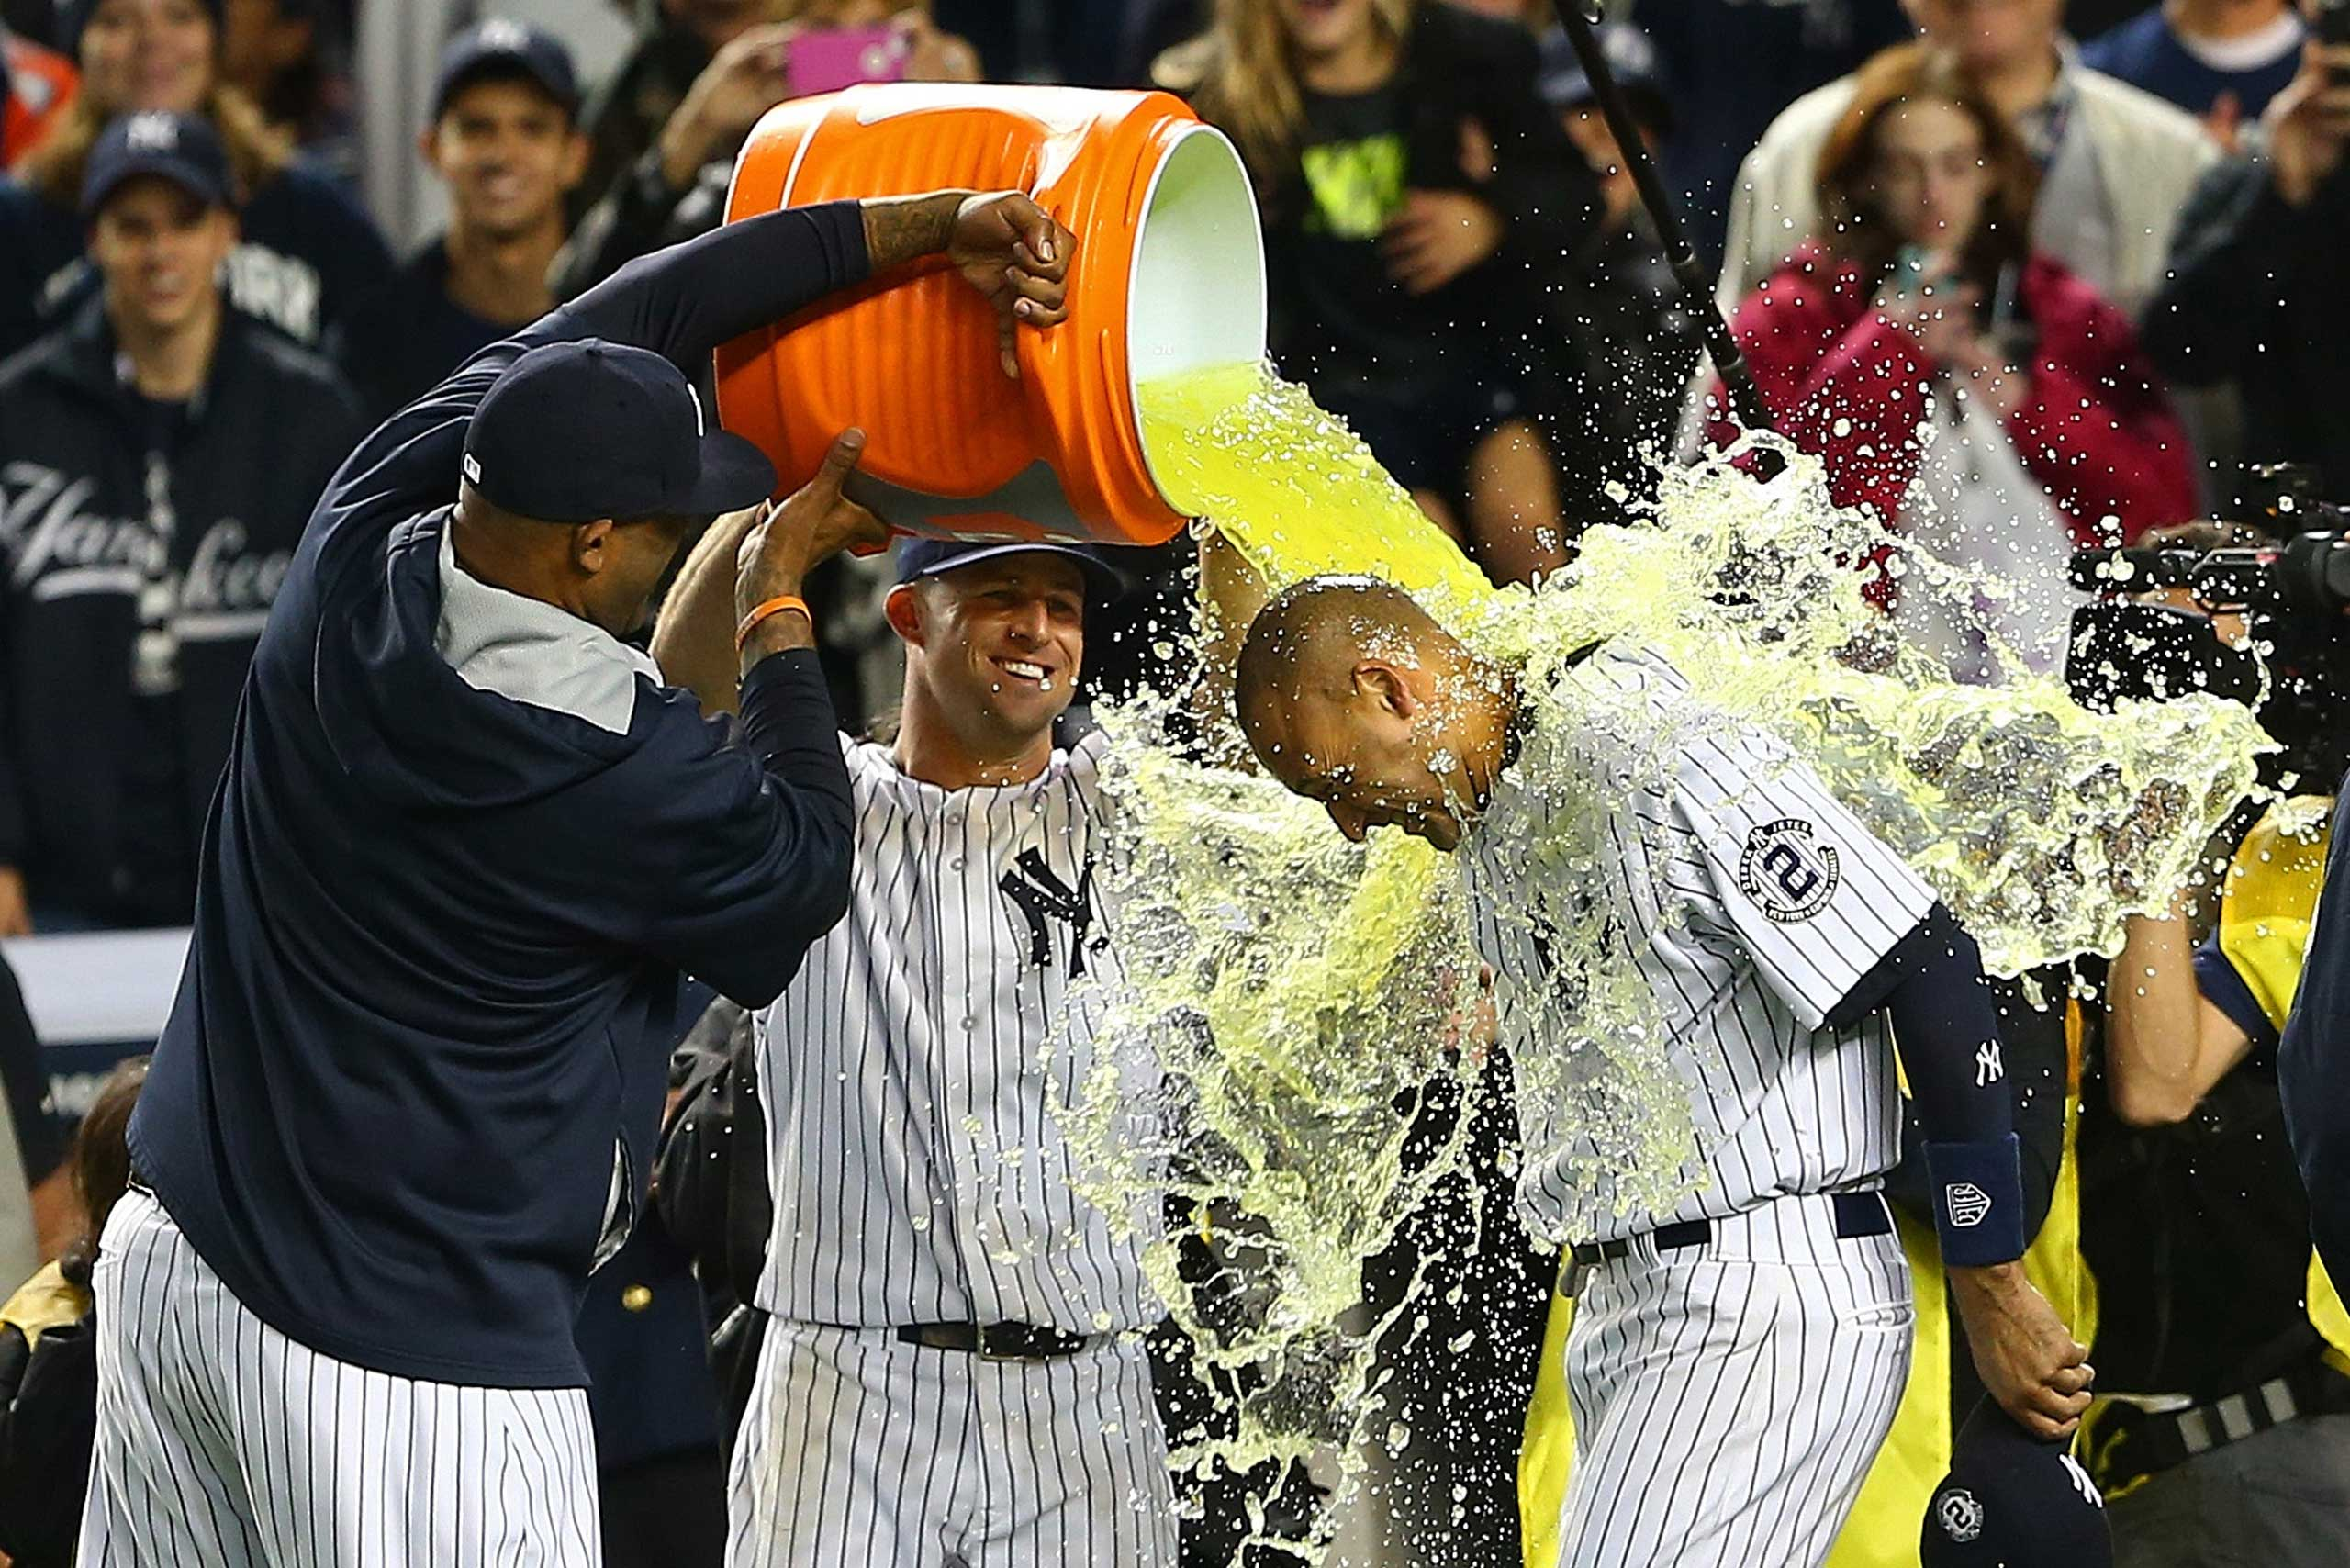 CC Sabathia and Brett Gardner dump Gatorade on Derek Jeter after he hit a game winning RBI hit in the ninth inning against the Baltimore Orioles in his last game ever at Yankee Stadium on Sept. 25, 2014.